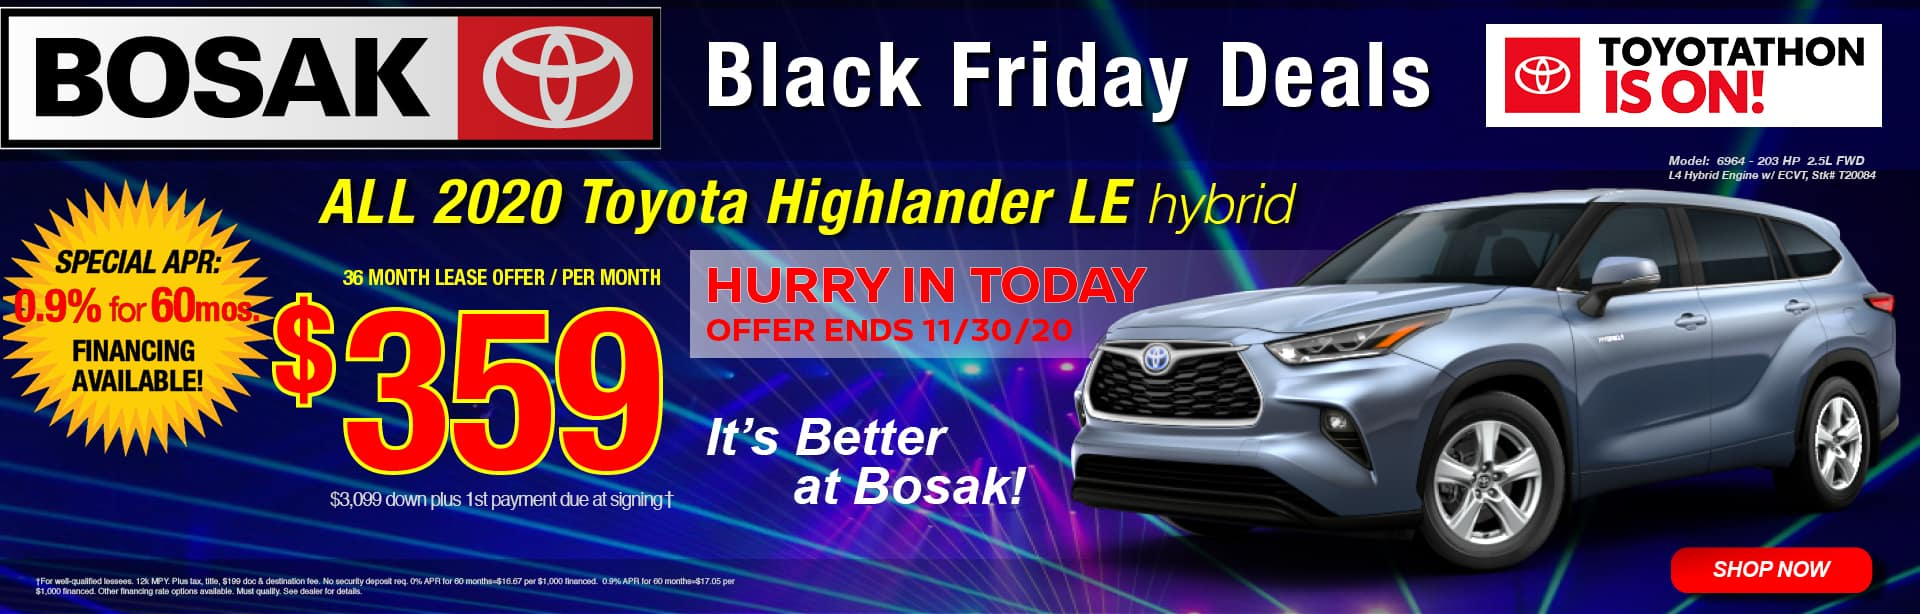 Black Friday Deals - Lease a 2020 Toyota Highlander for $359 per month